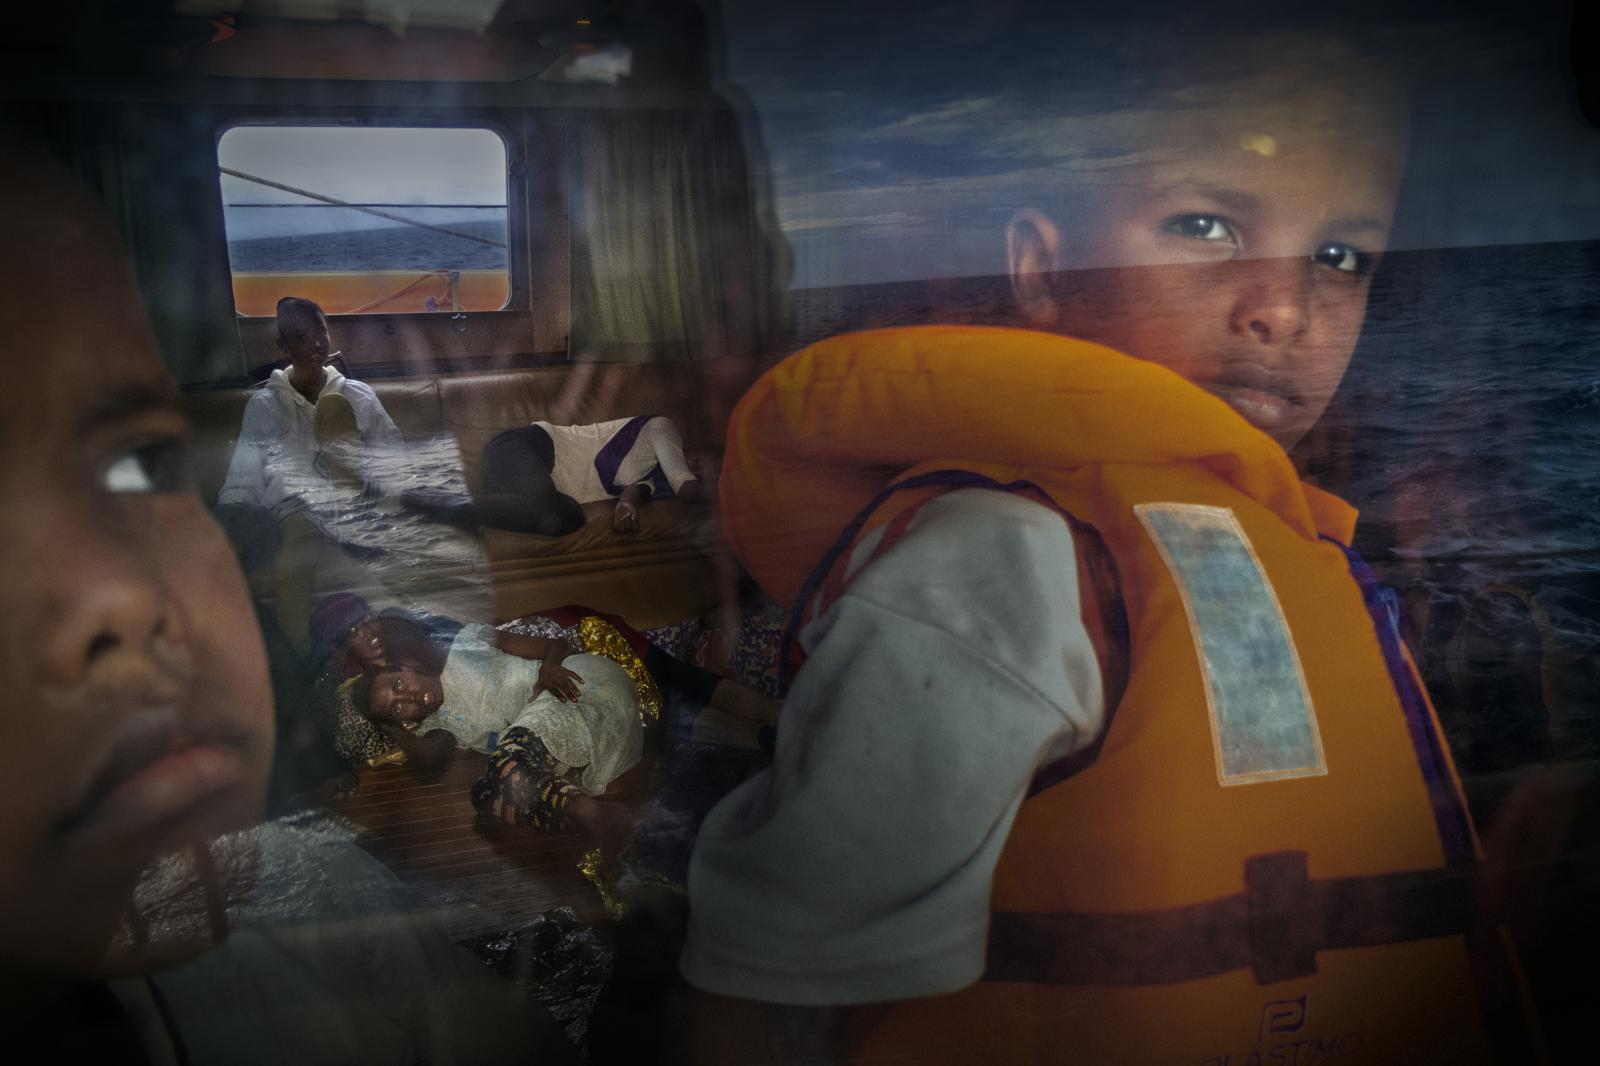 Samir, 8, from Somalia, looks out the window of the NGO Proactiva Open Arms rescue vessel Astral, while other refugees and migrants rest on their way to Lampedusa during a storm. With up to 65 km-per-hour winds, the storm, undoubtedly, would have killed them all. Libya, with its 1,770 kilometres (1100 miles) of shoreline plunged in chaos, has become an illegal immigration hub on the way to Europe. The migrants embark in rickety boats on hopeless crossings to Lampedusa, some 300 kilometres from the coast.